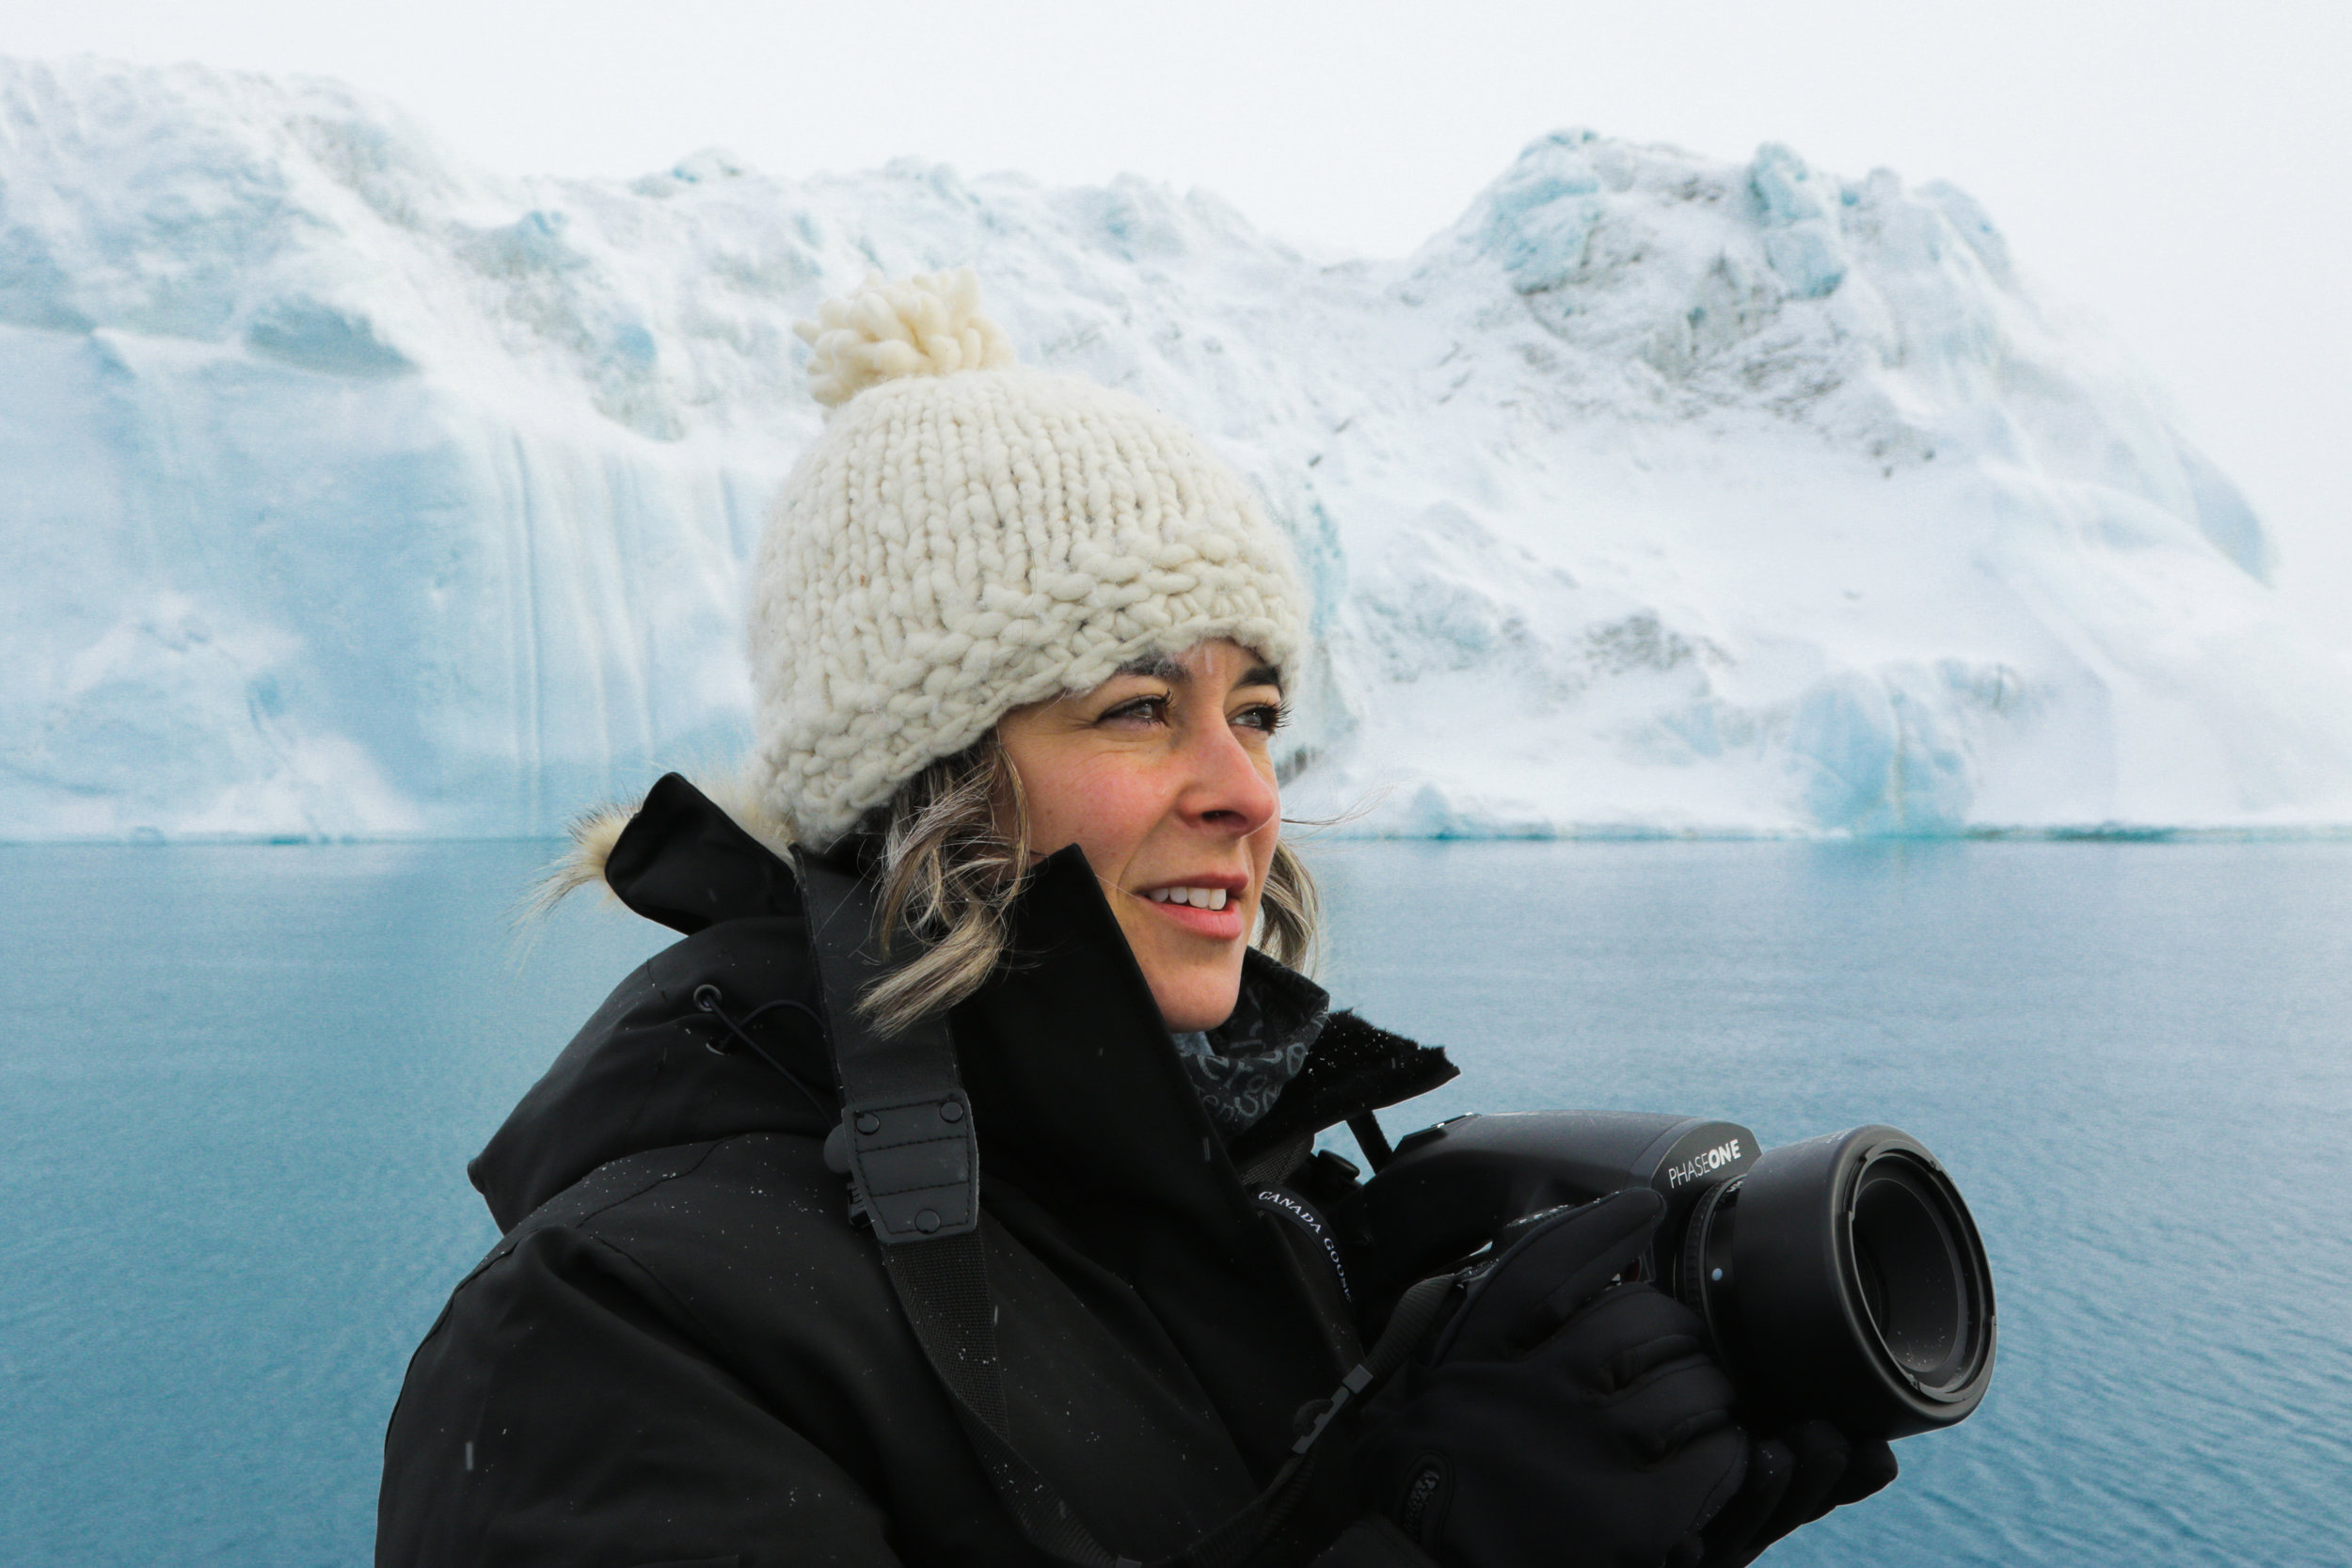 Forman journeyed to Antarctica to collect the photographs that have inspired her work. Credit: Drew Denny